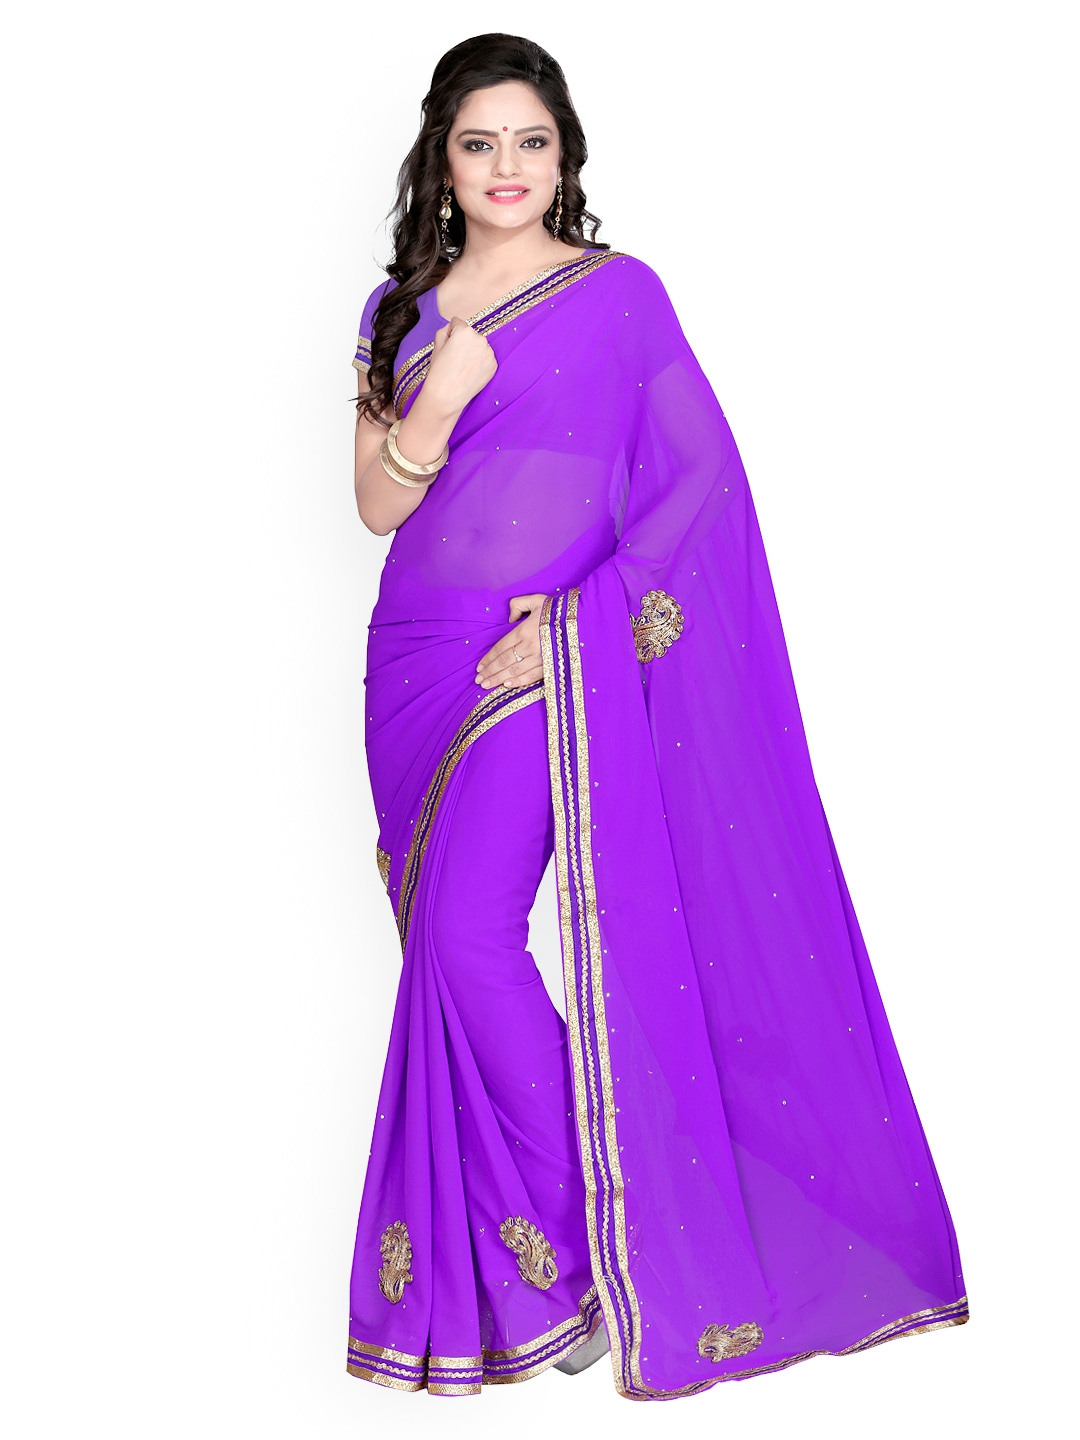 Myntra florence blue embroidered chiffon fashion saree